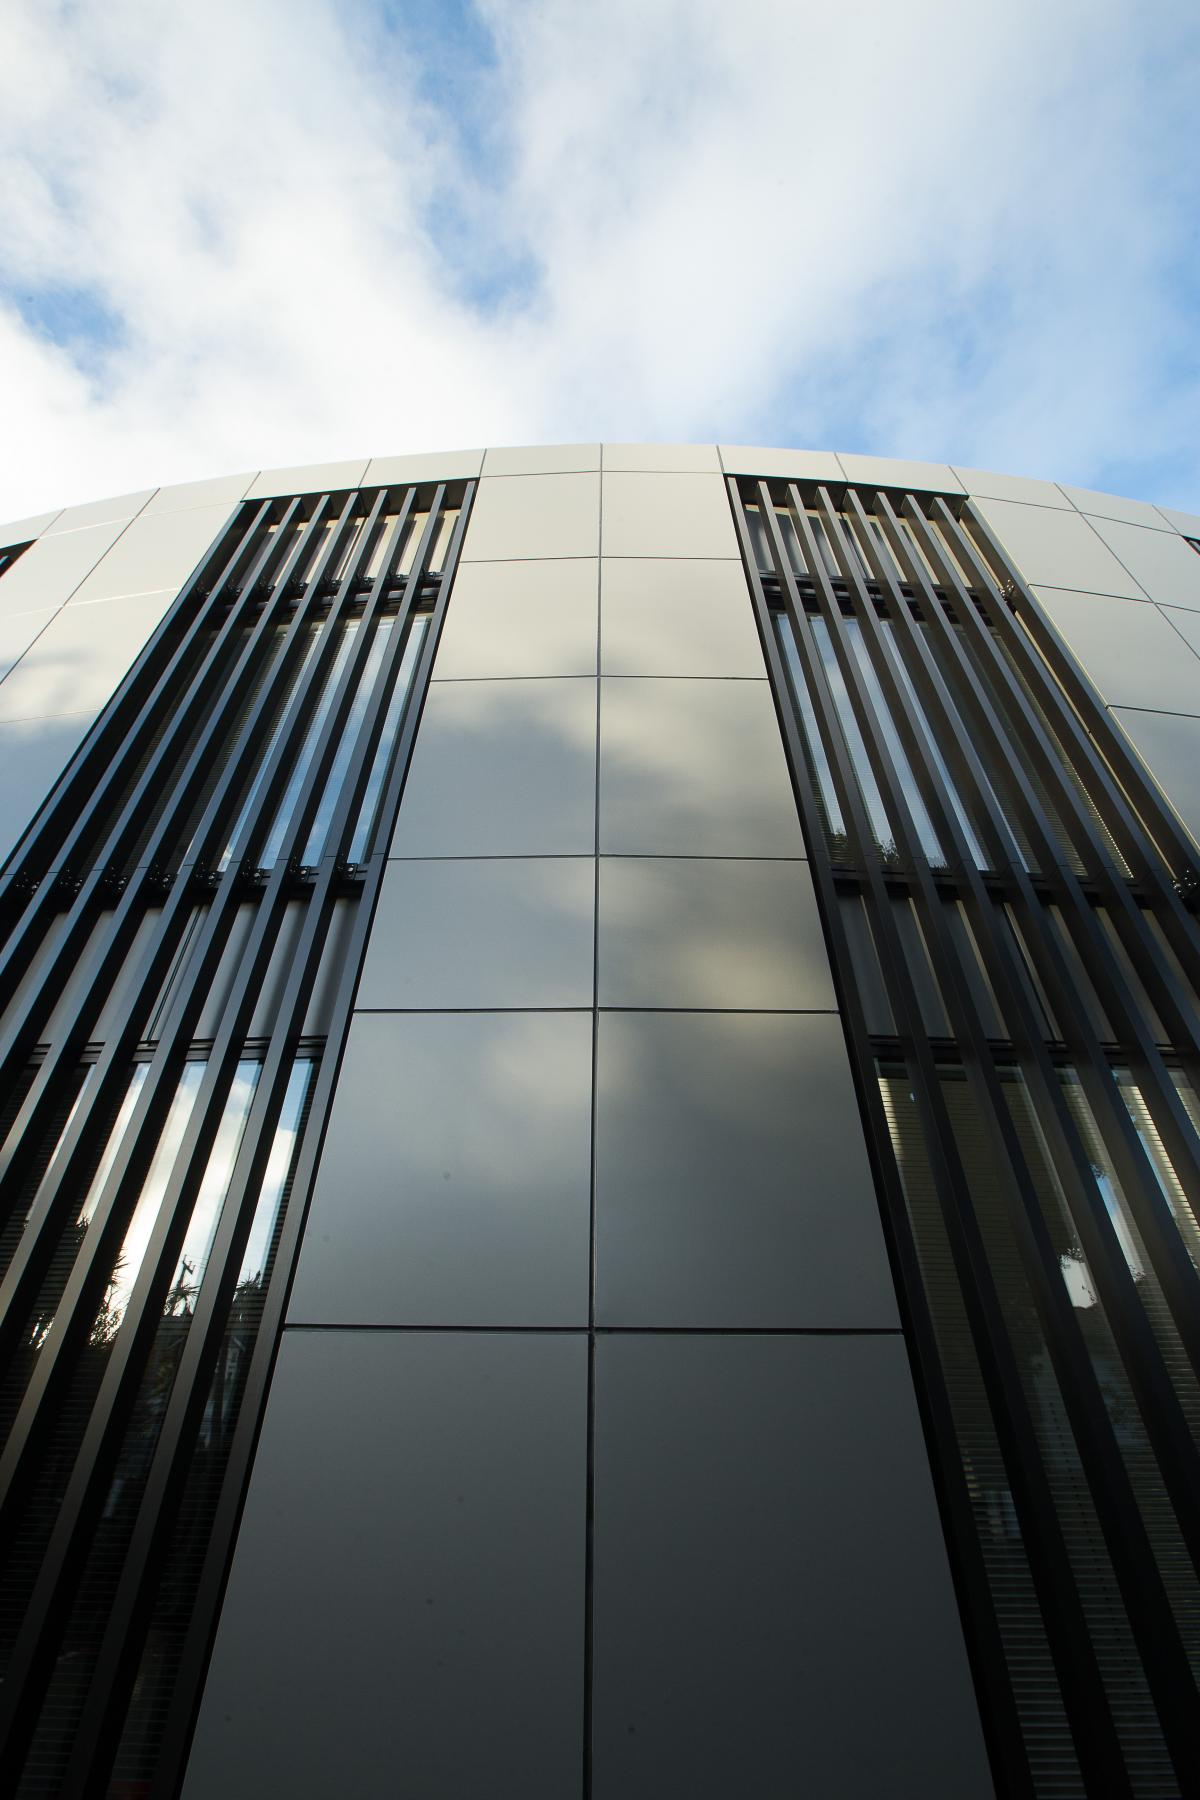 ACMF vertical louvres, commercial. Creating shade and light control, privacy and security, energy efficiencies, natural air flow.